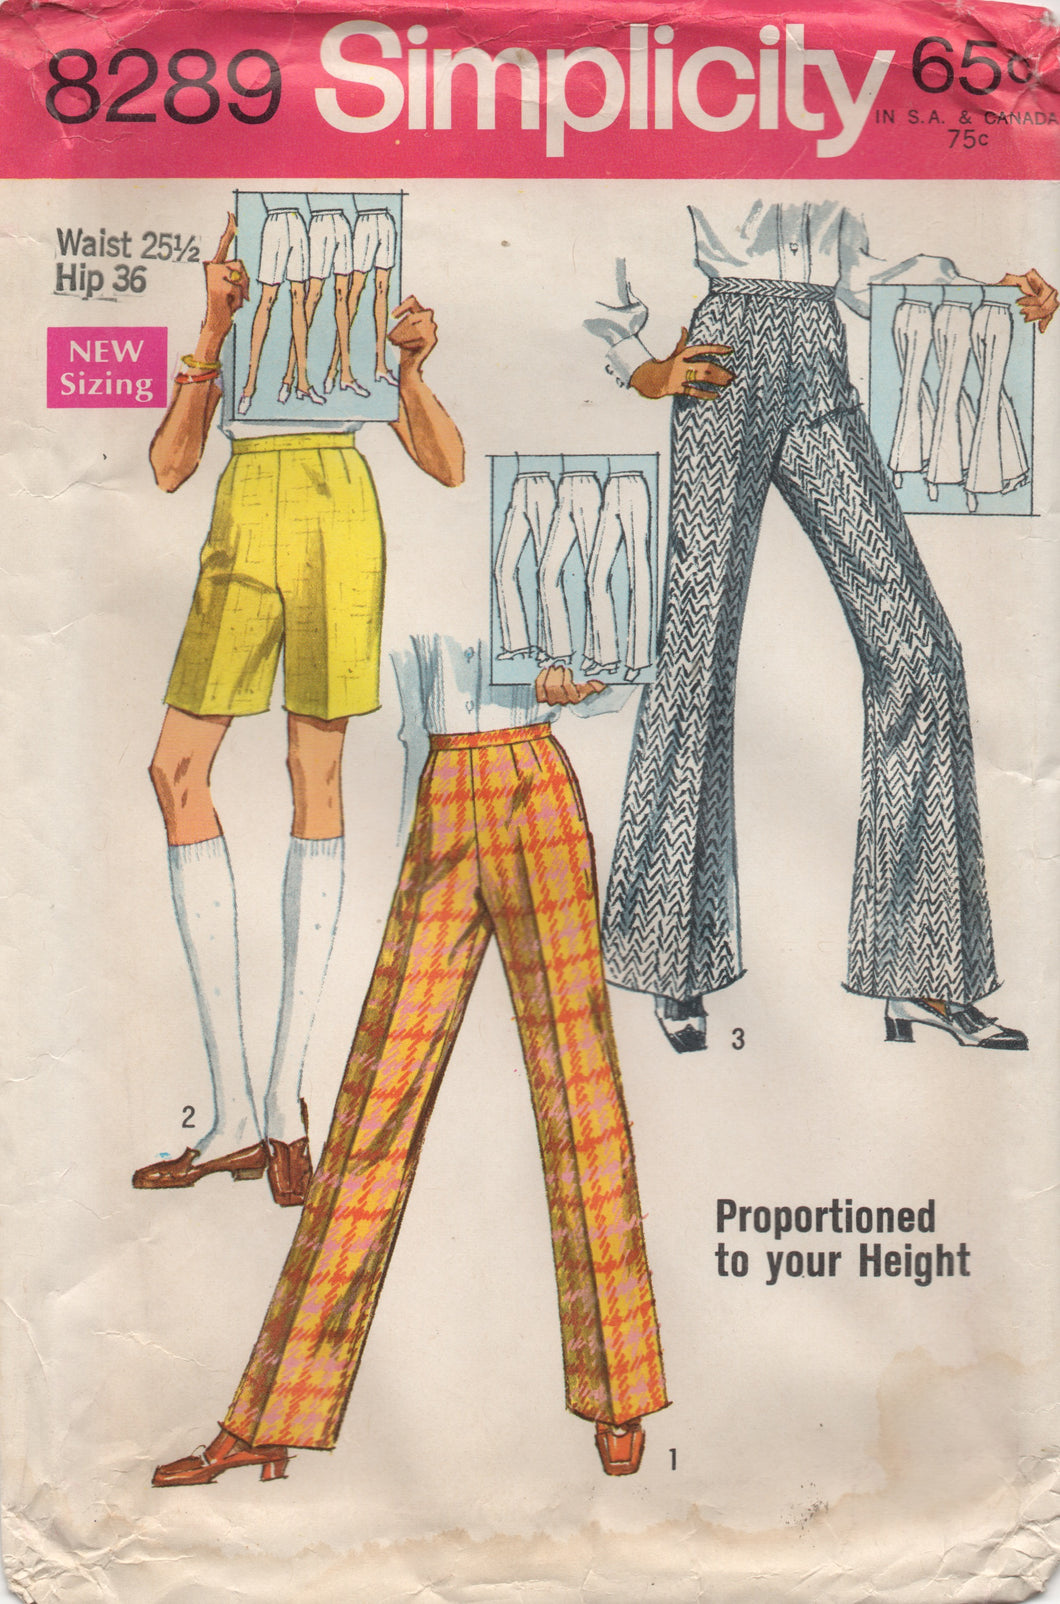 1960's Simplicity Bermuda Shorts, High-waisted trousers or Bell Bottoms - Waist 25.5